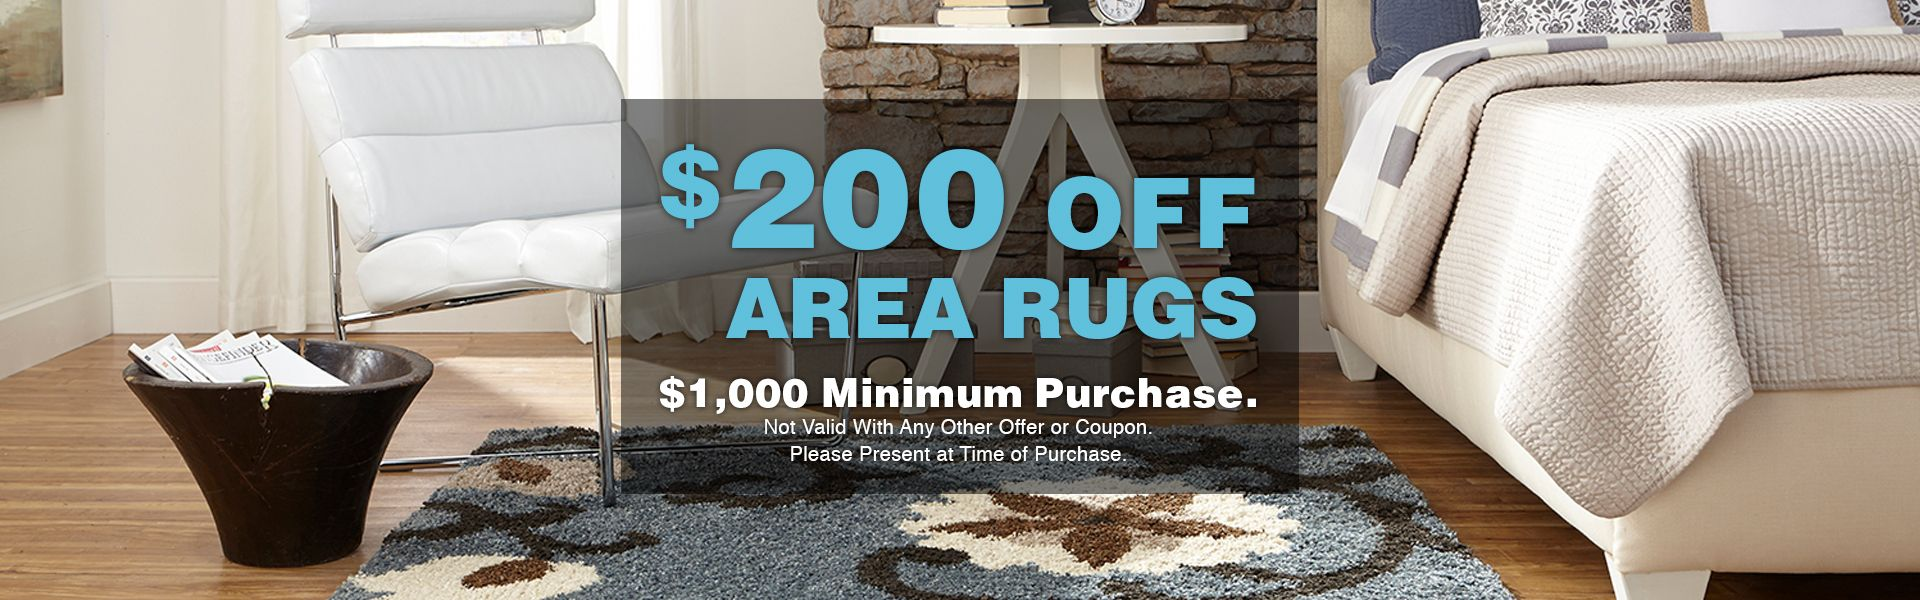 200 dollars off area rugs coupon